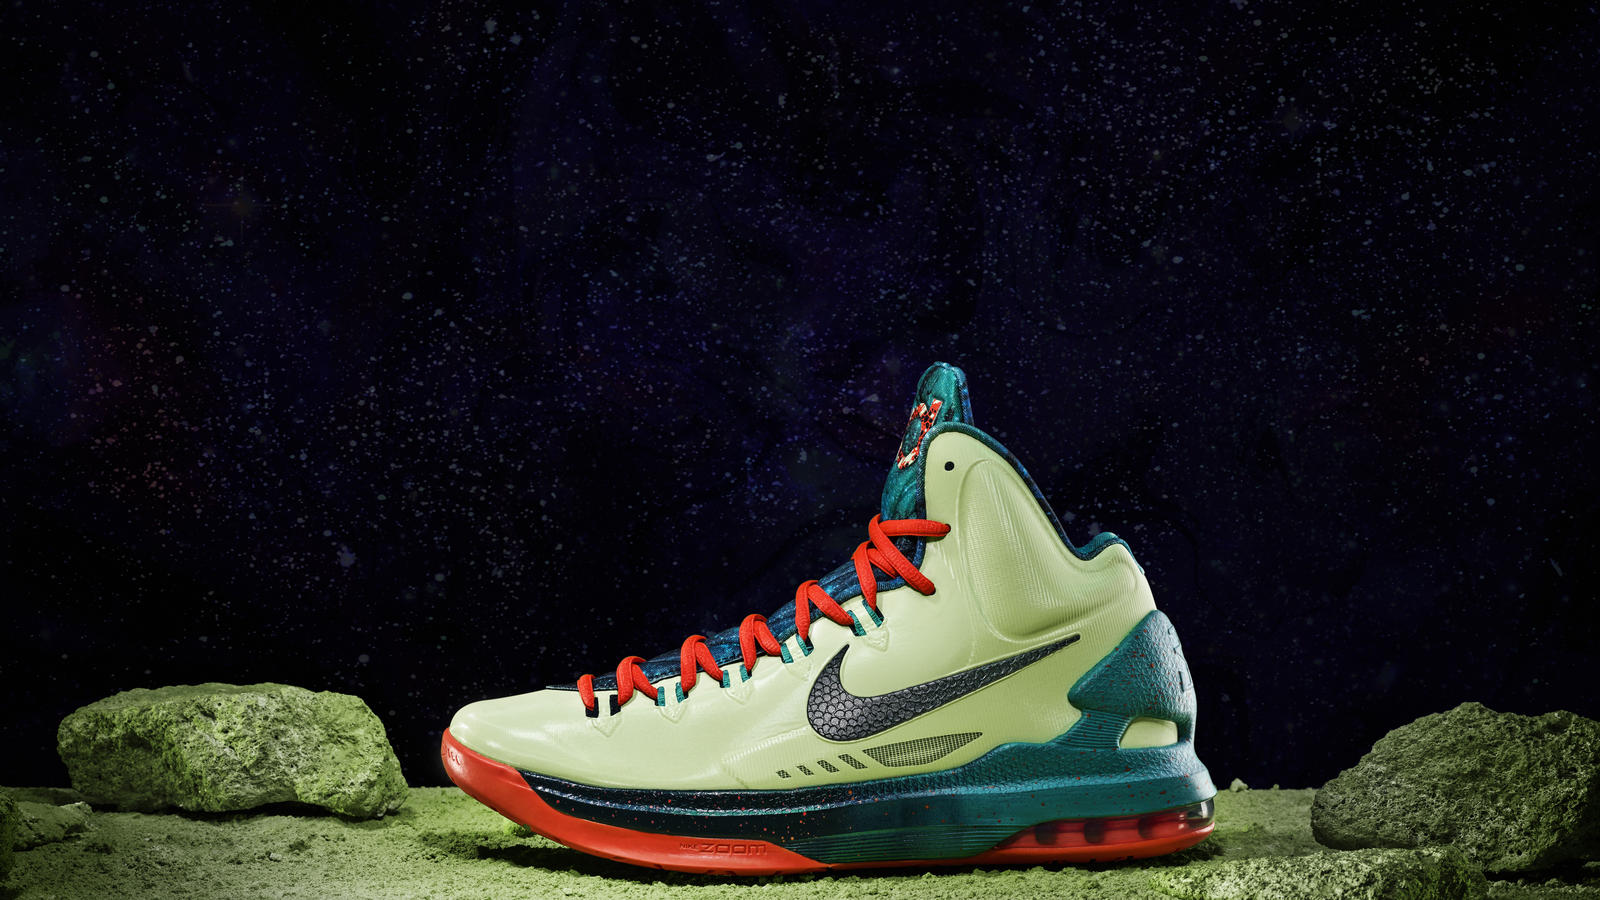 5cab29d54b67 Nike Basketball s extraterrestrial mission for Houston - Nike News